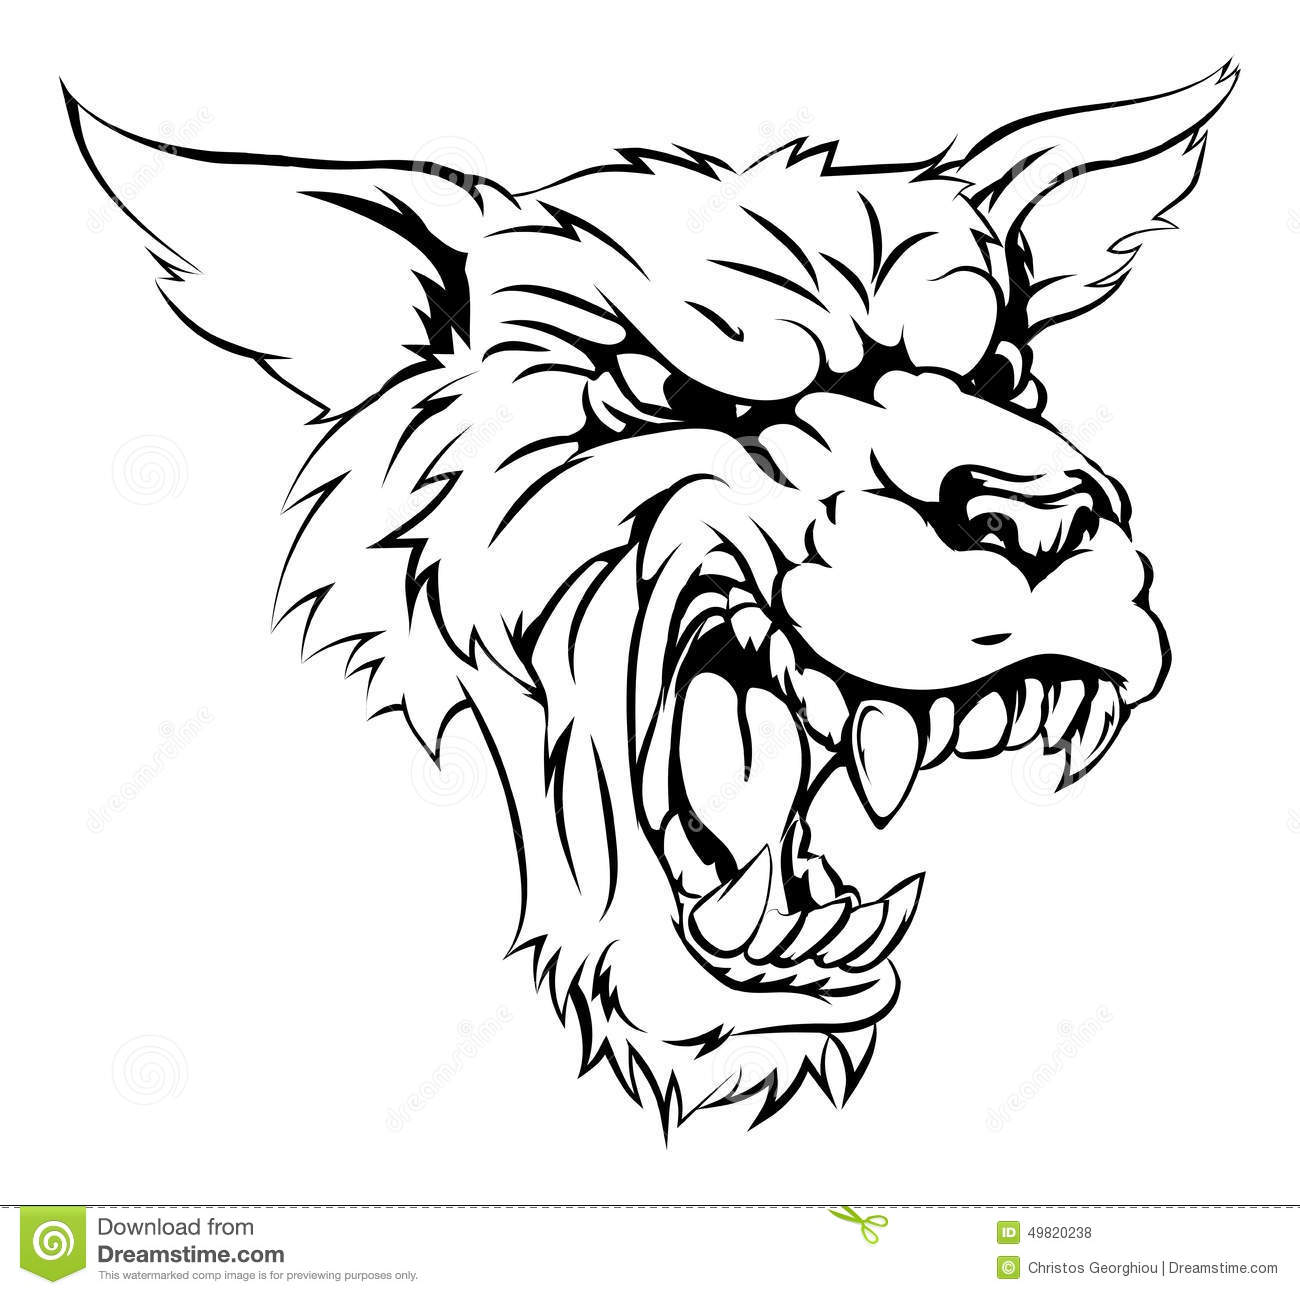 Caract re de loup garou ou de loup illustration de vecteur illustration du monochrome f ch - Loup dessin facile ...